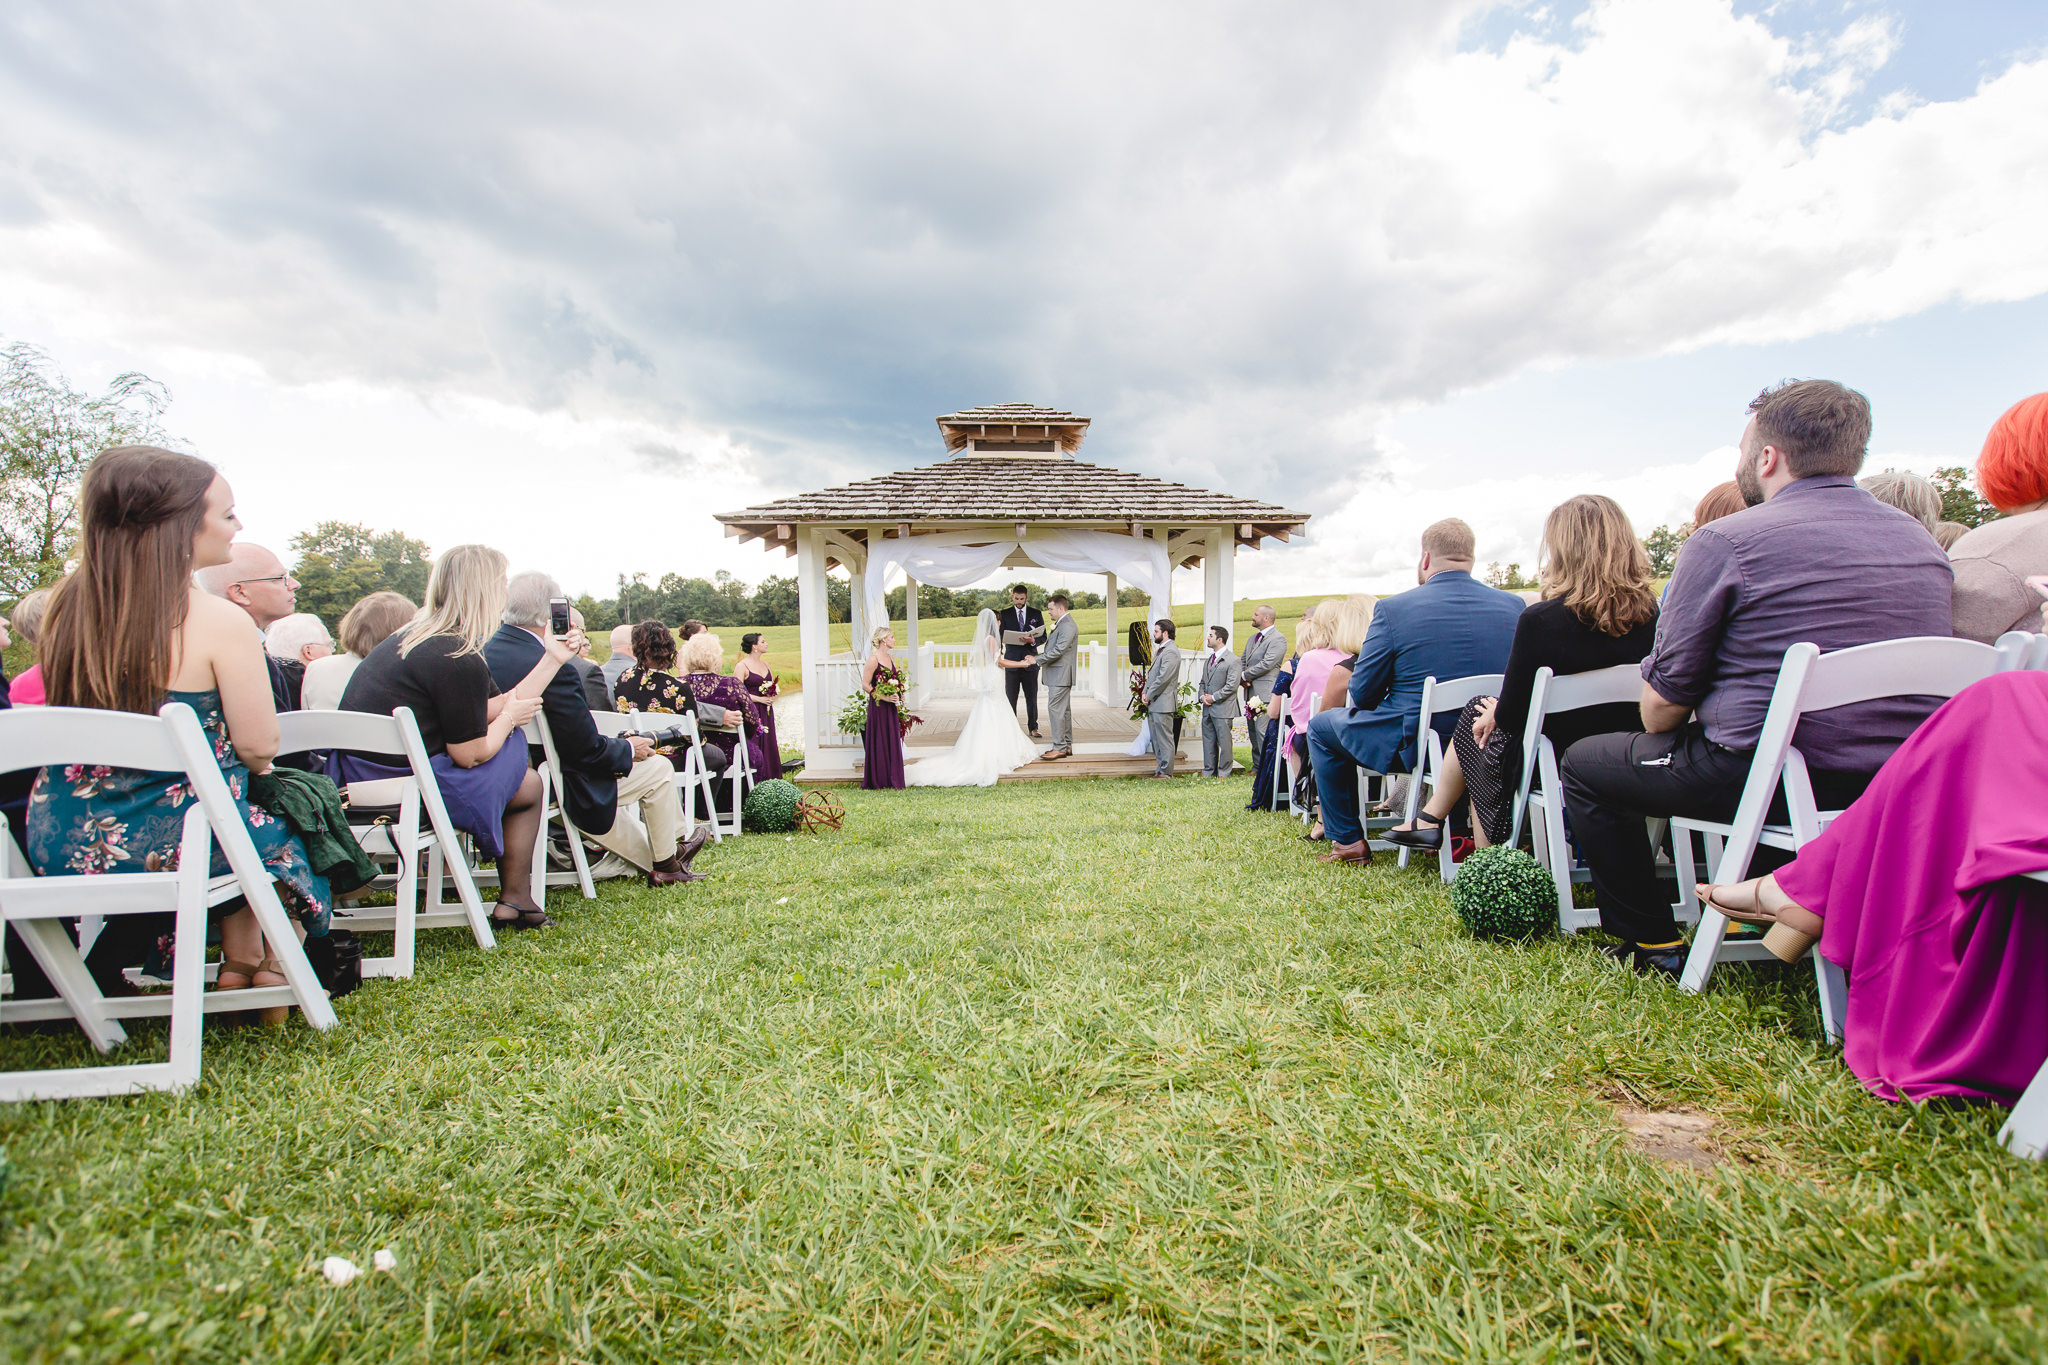 Outdoor wedding ceremony at White Barn in Prospect PA